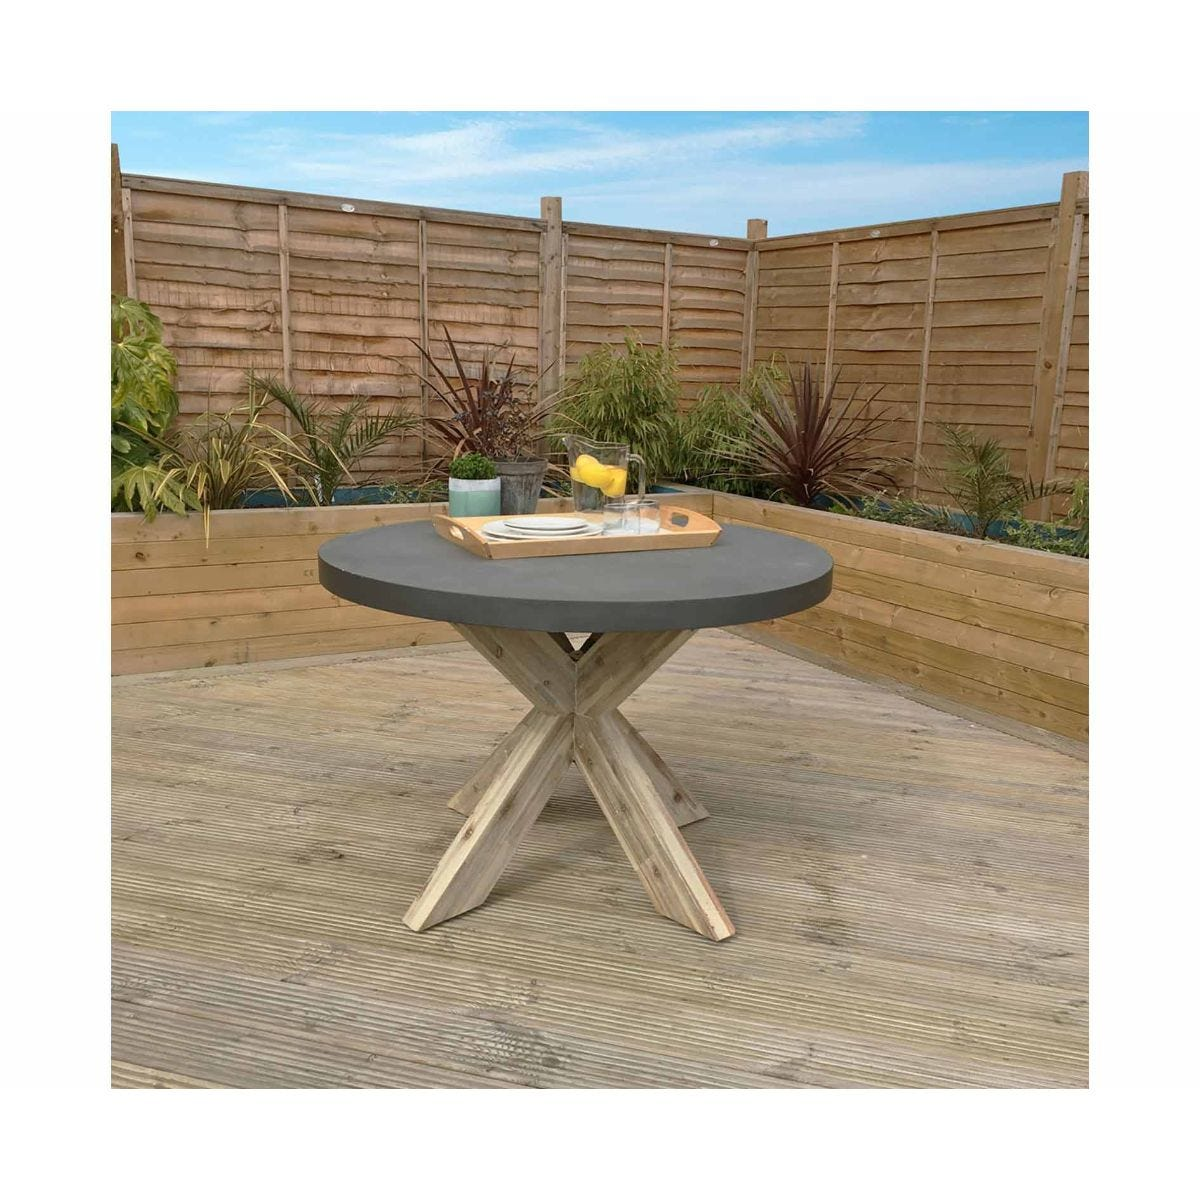 Charles Bentley Concrete Wood Round Garden Dining Table, Grey